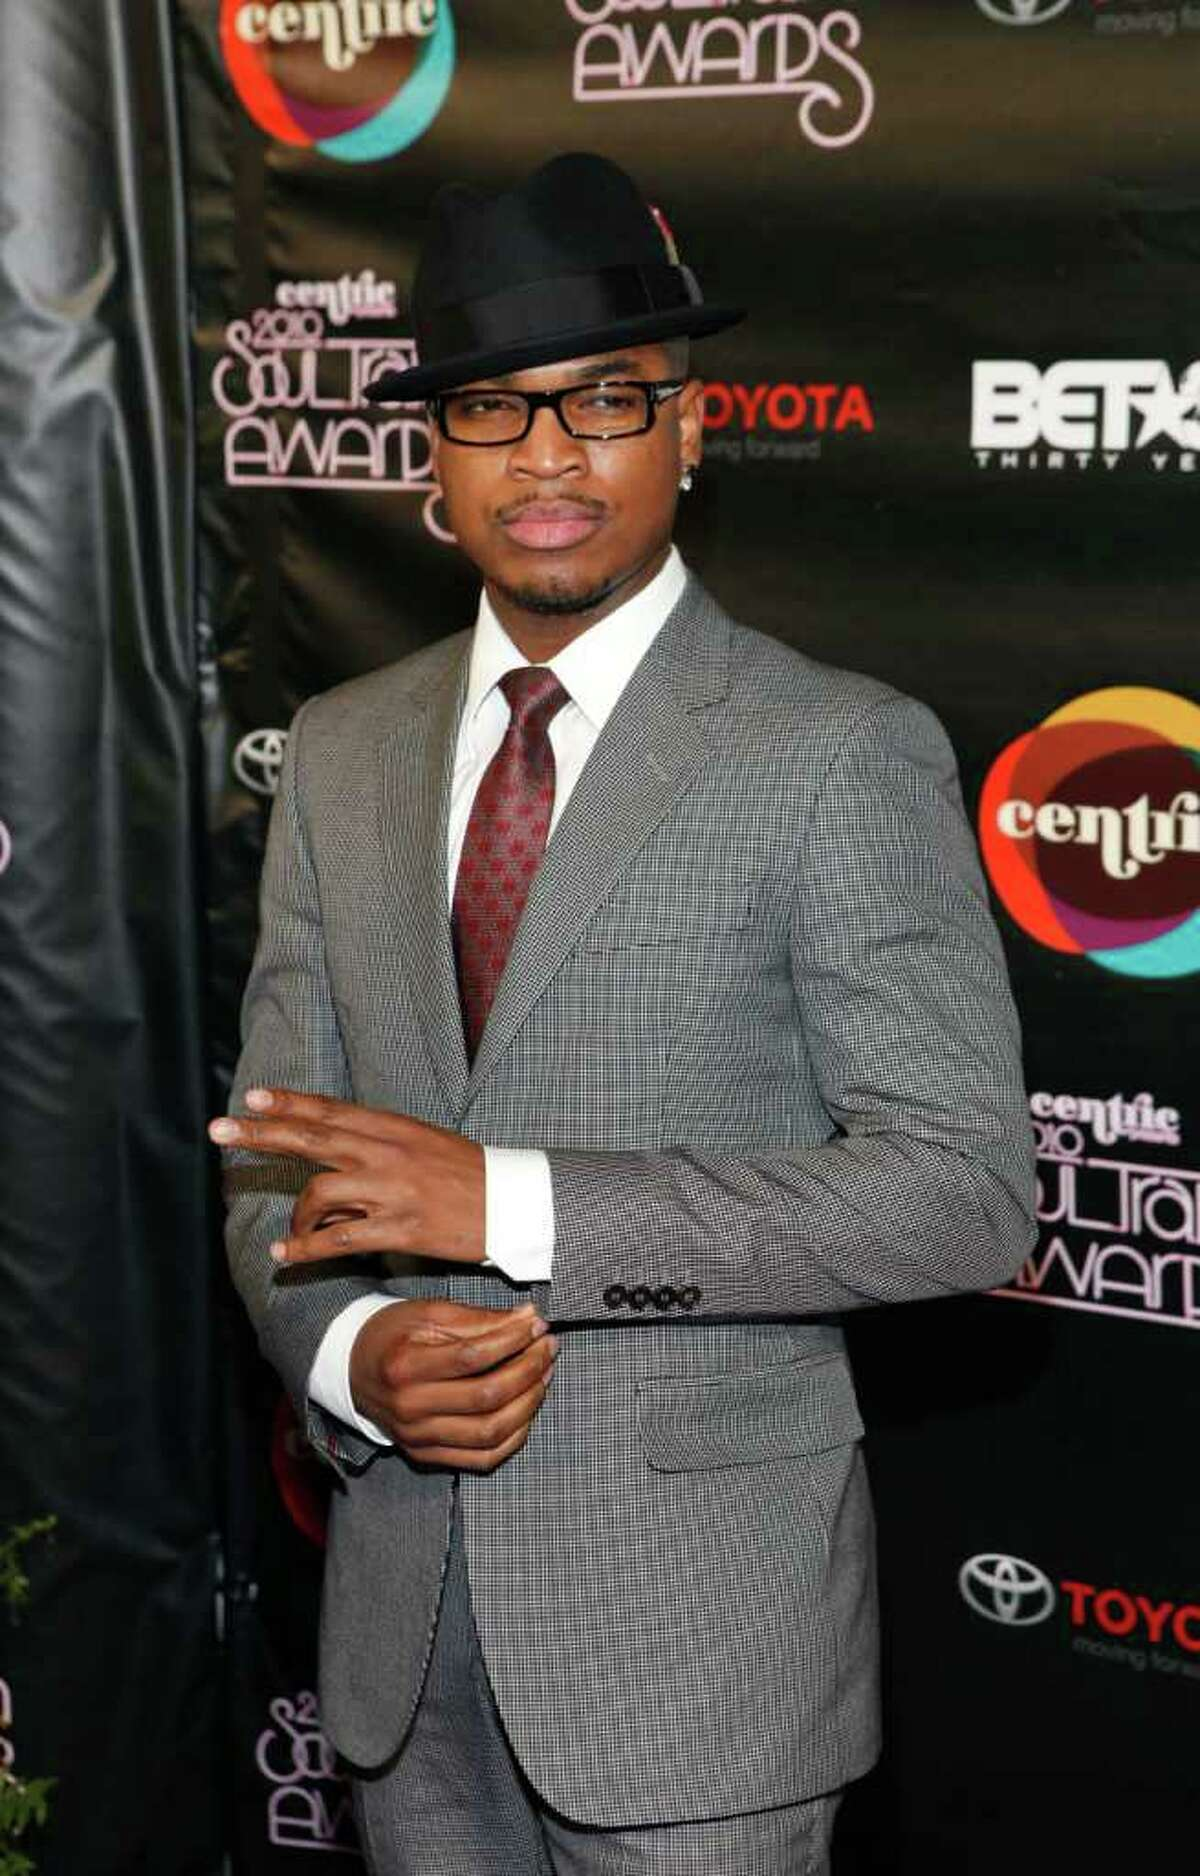 """FILE - In this Nov. 10, 2010, Ne-Yo arrives for the Soul Train awards in Atlanta. Grammy winning-singer Ne-Yo confirmed Friday, March 11, 2011, that he closed a deal with the Cartoon Network to produce his own show called """"I Heart Tuesdays."""" (AP Photo/David Goldman, file)"""